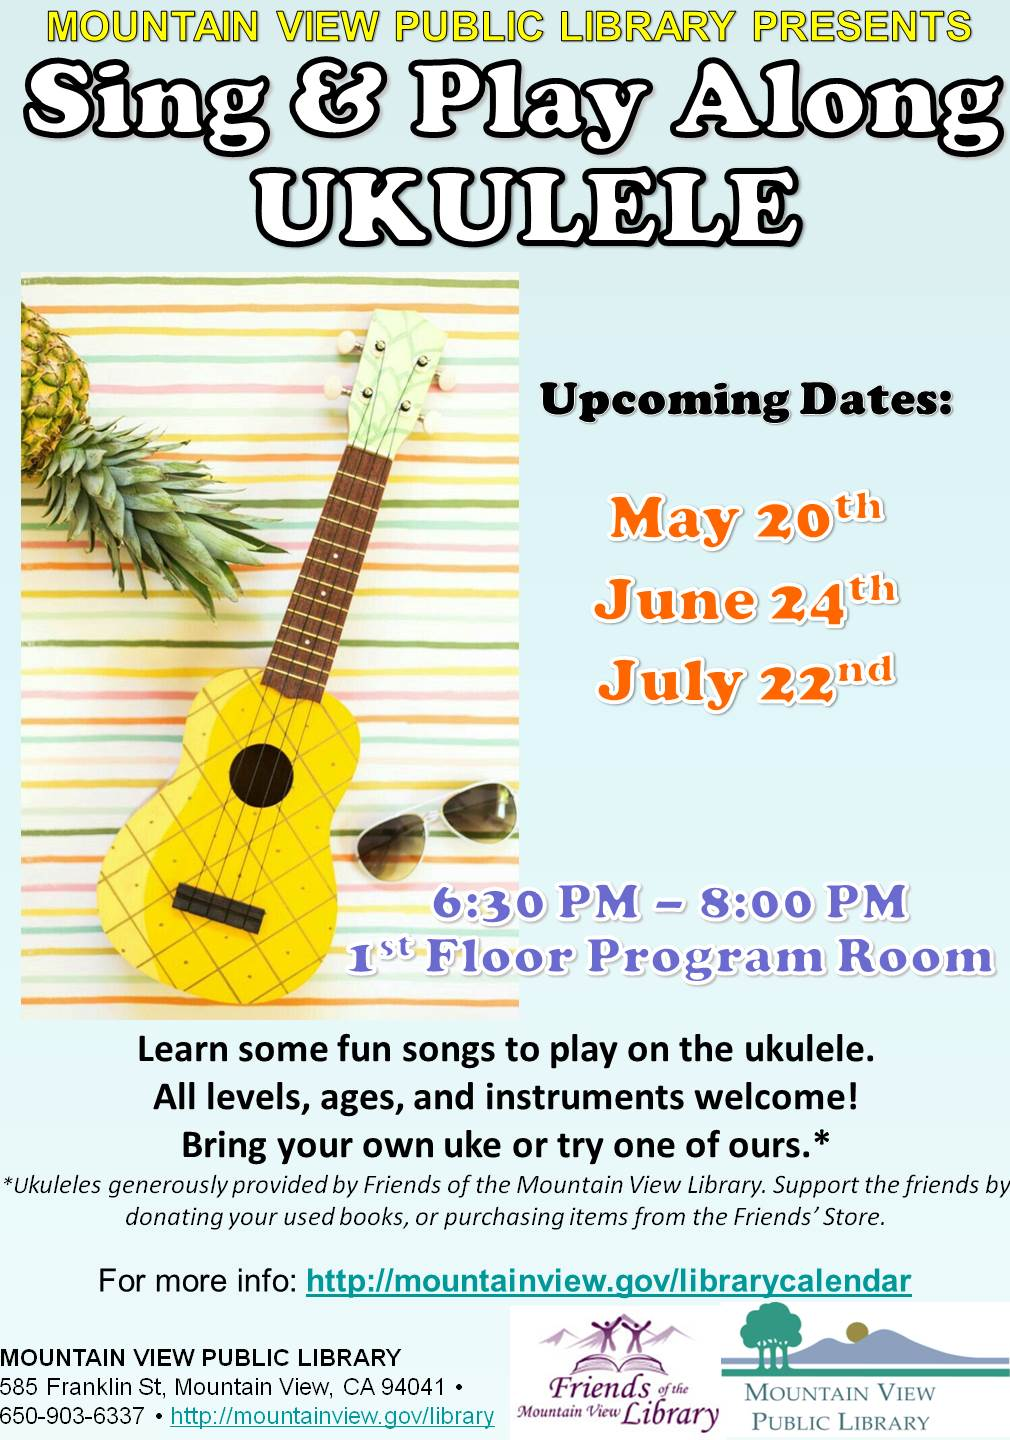 Sing & Play Along Ukulele